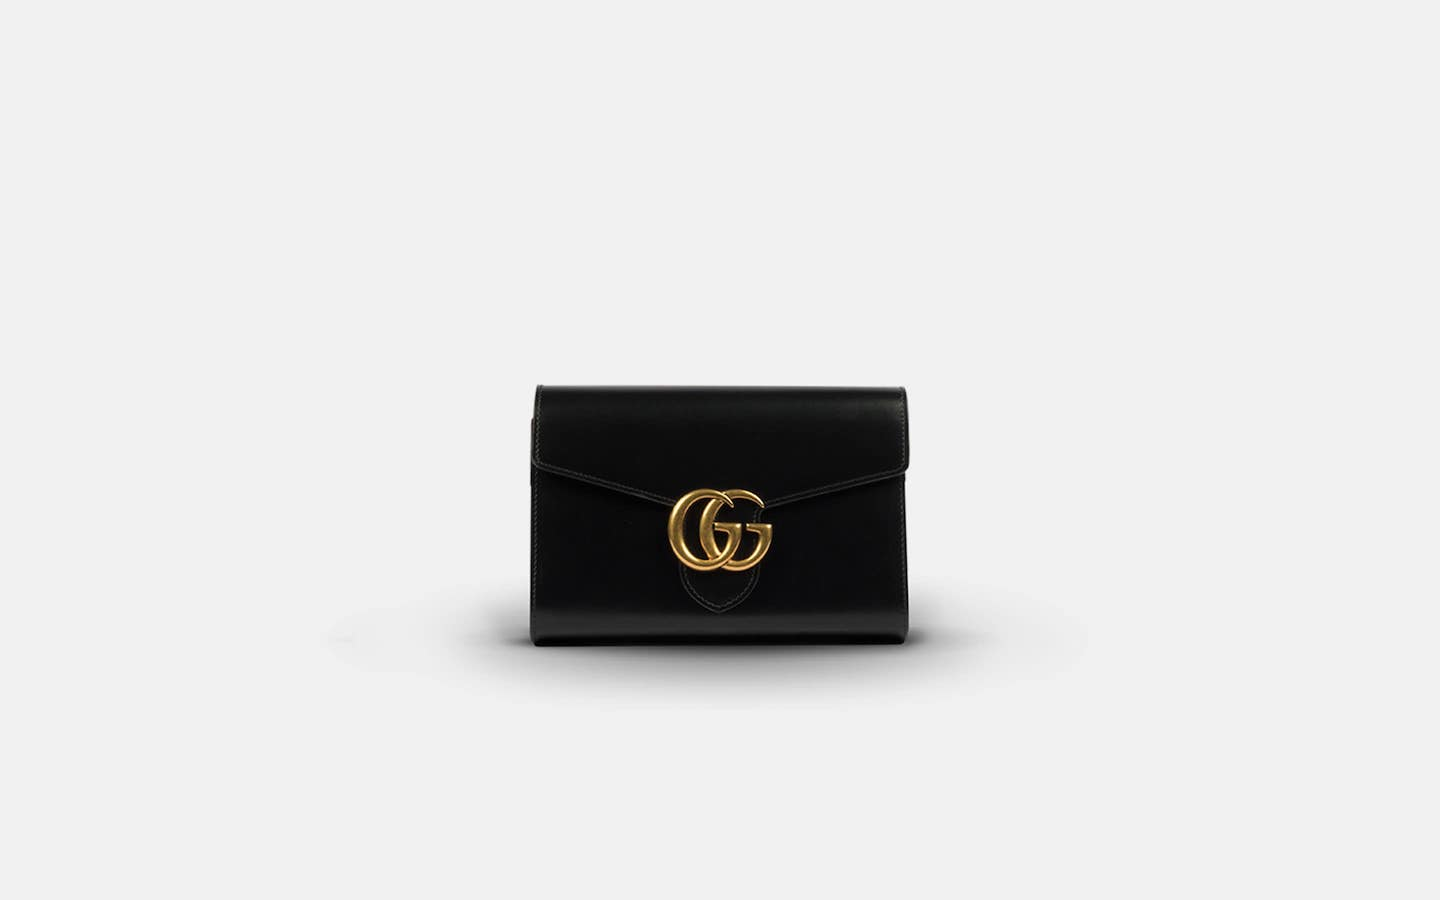 Gucci_Marmont_Chain_Wallet_Black_Clutch_Front-min